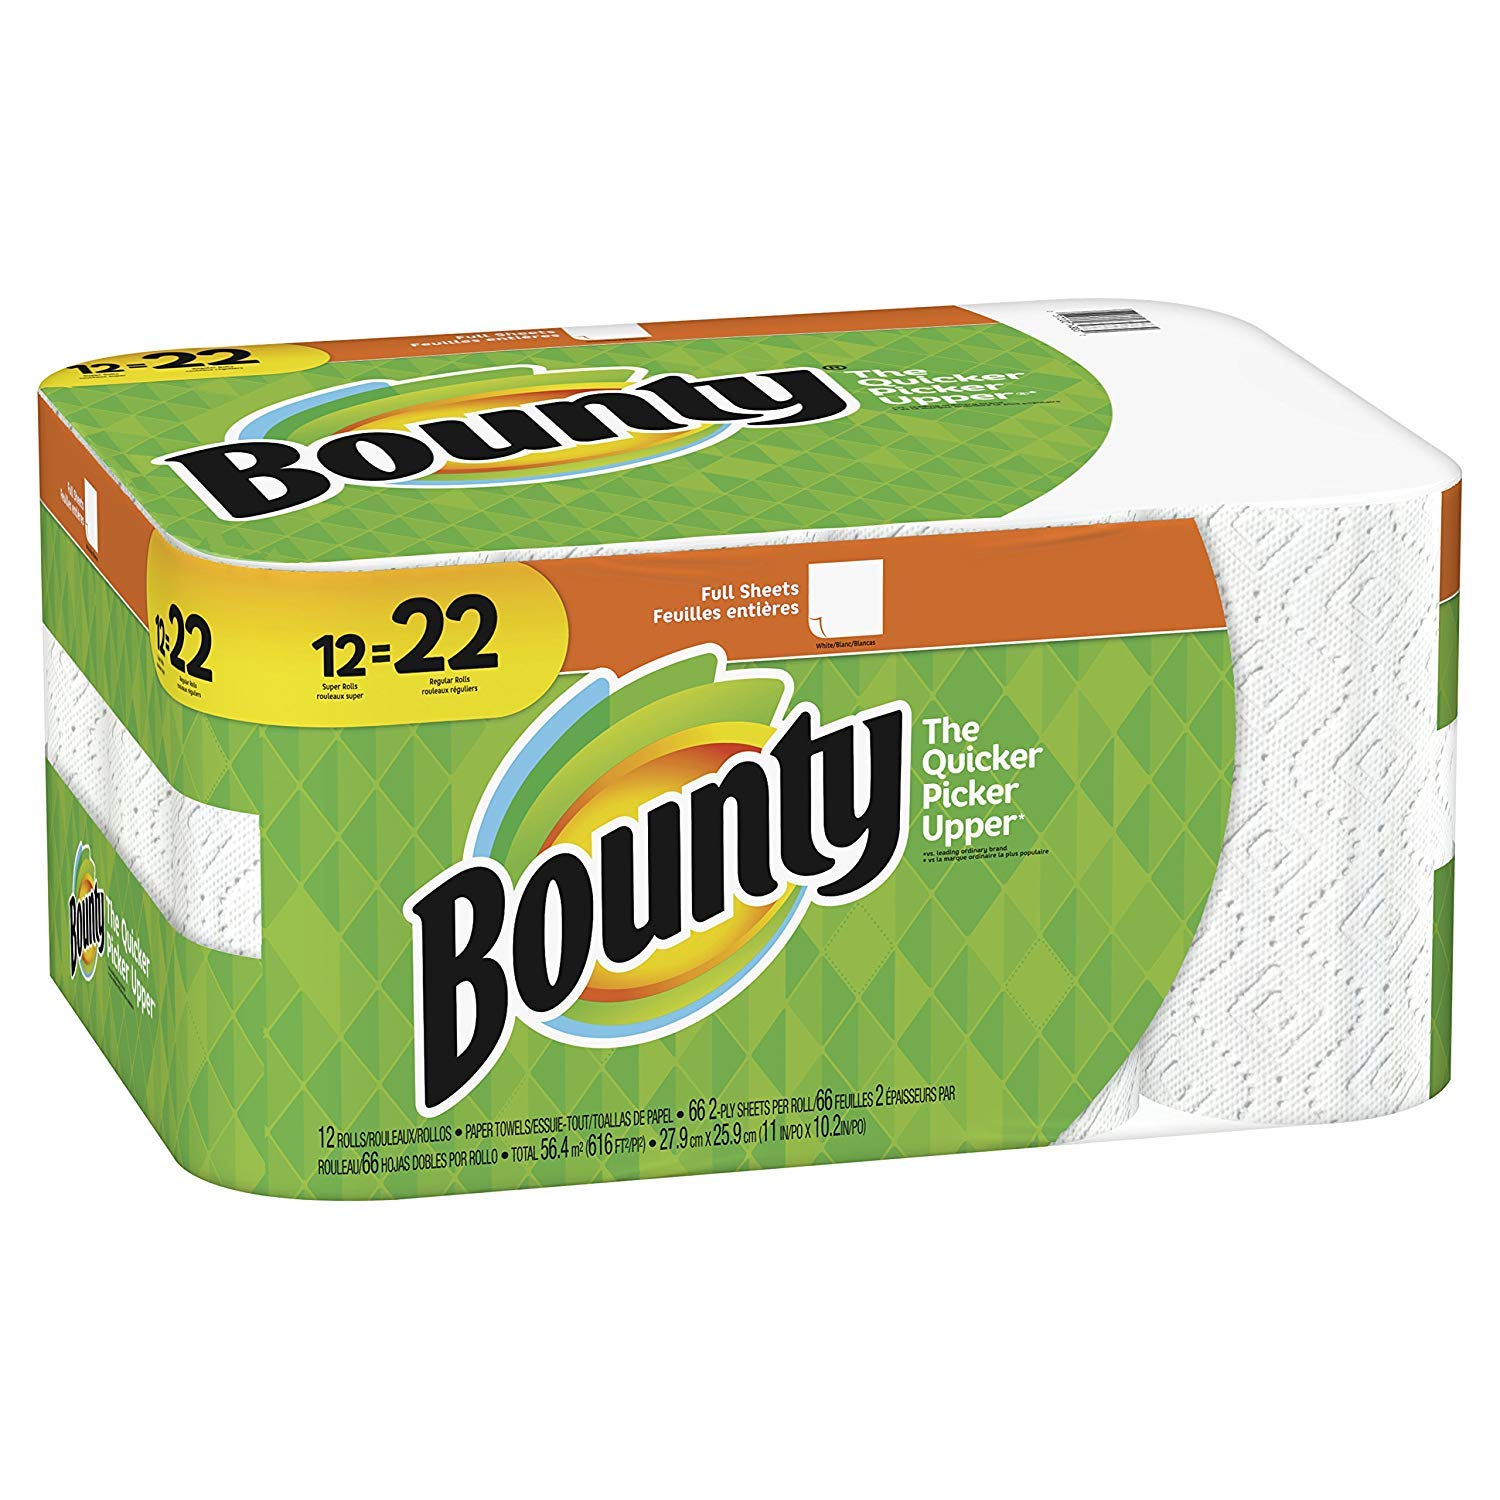 Amazon.com: Bounty White Paper Towels, 2-Ply, 12 Super and 22 Regular Rolls: Kitchen & Dining